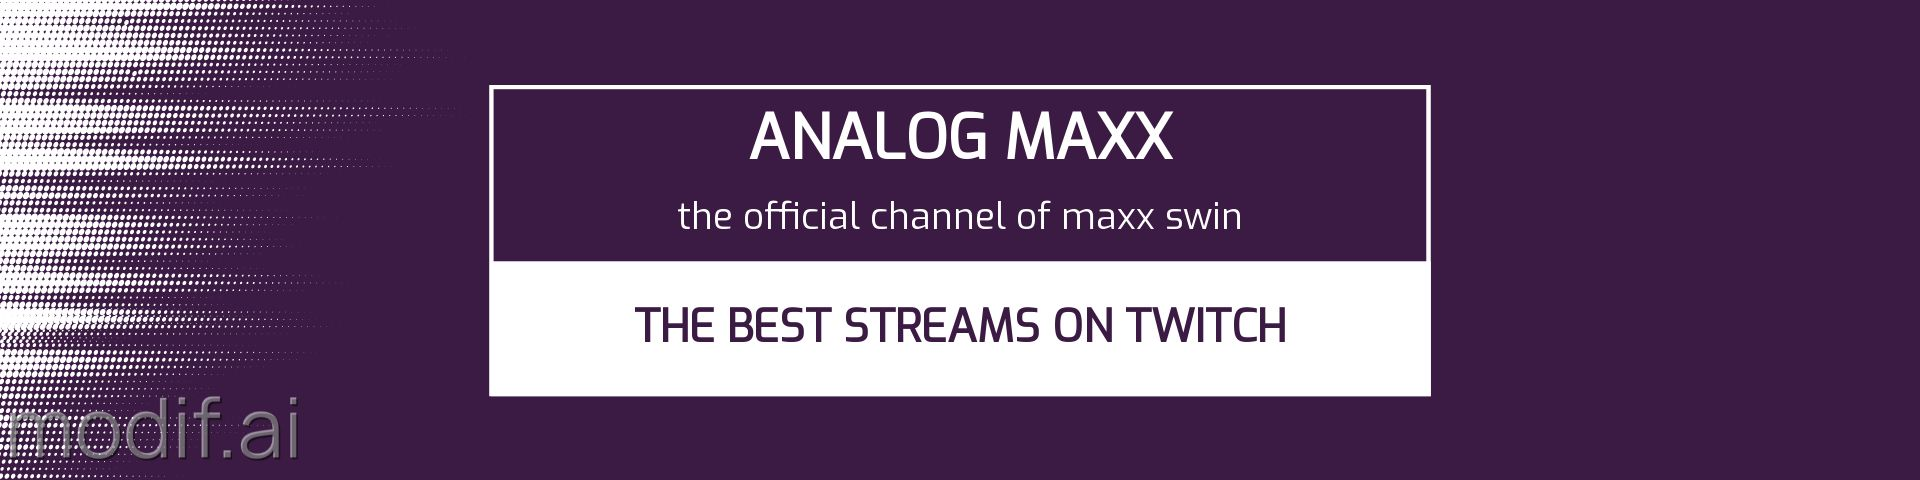 Twitch Channel Heading Banner Template